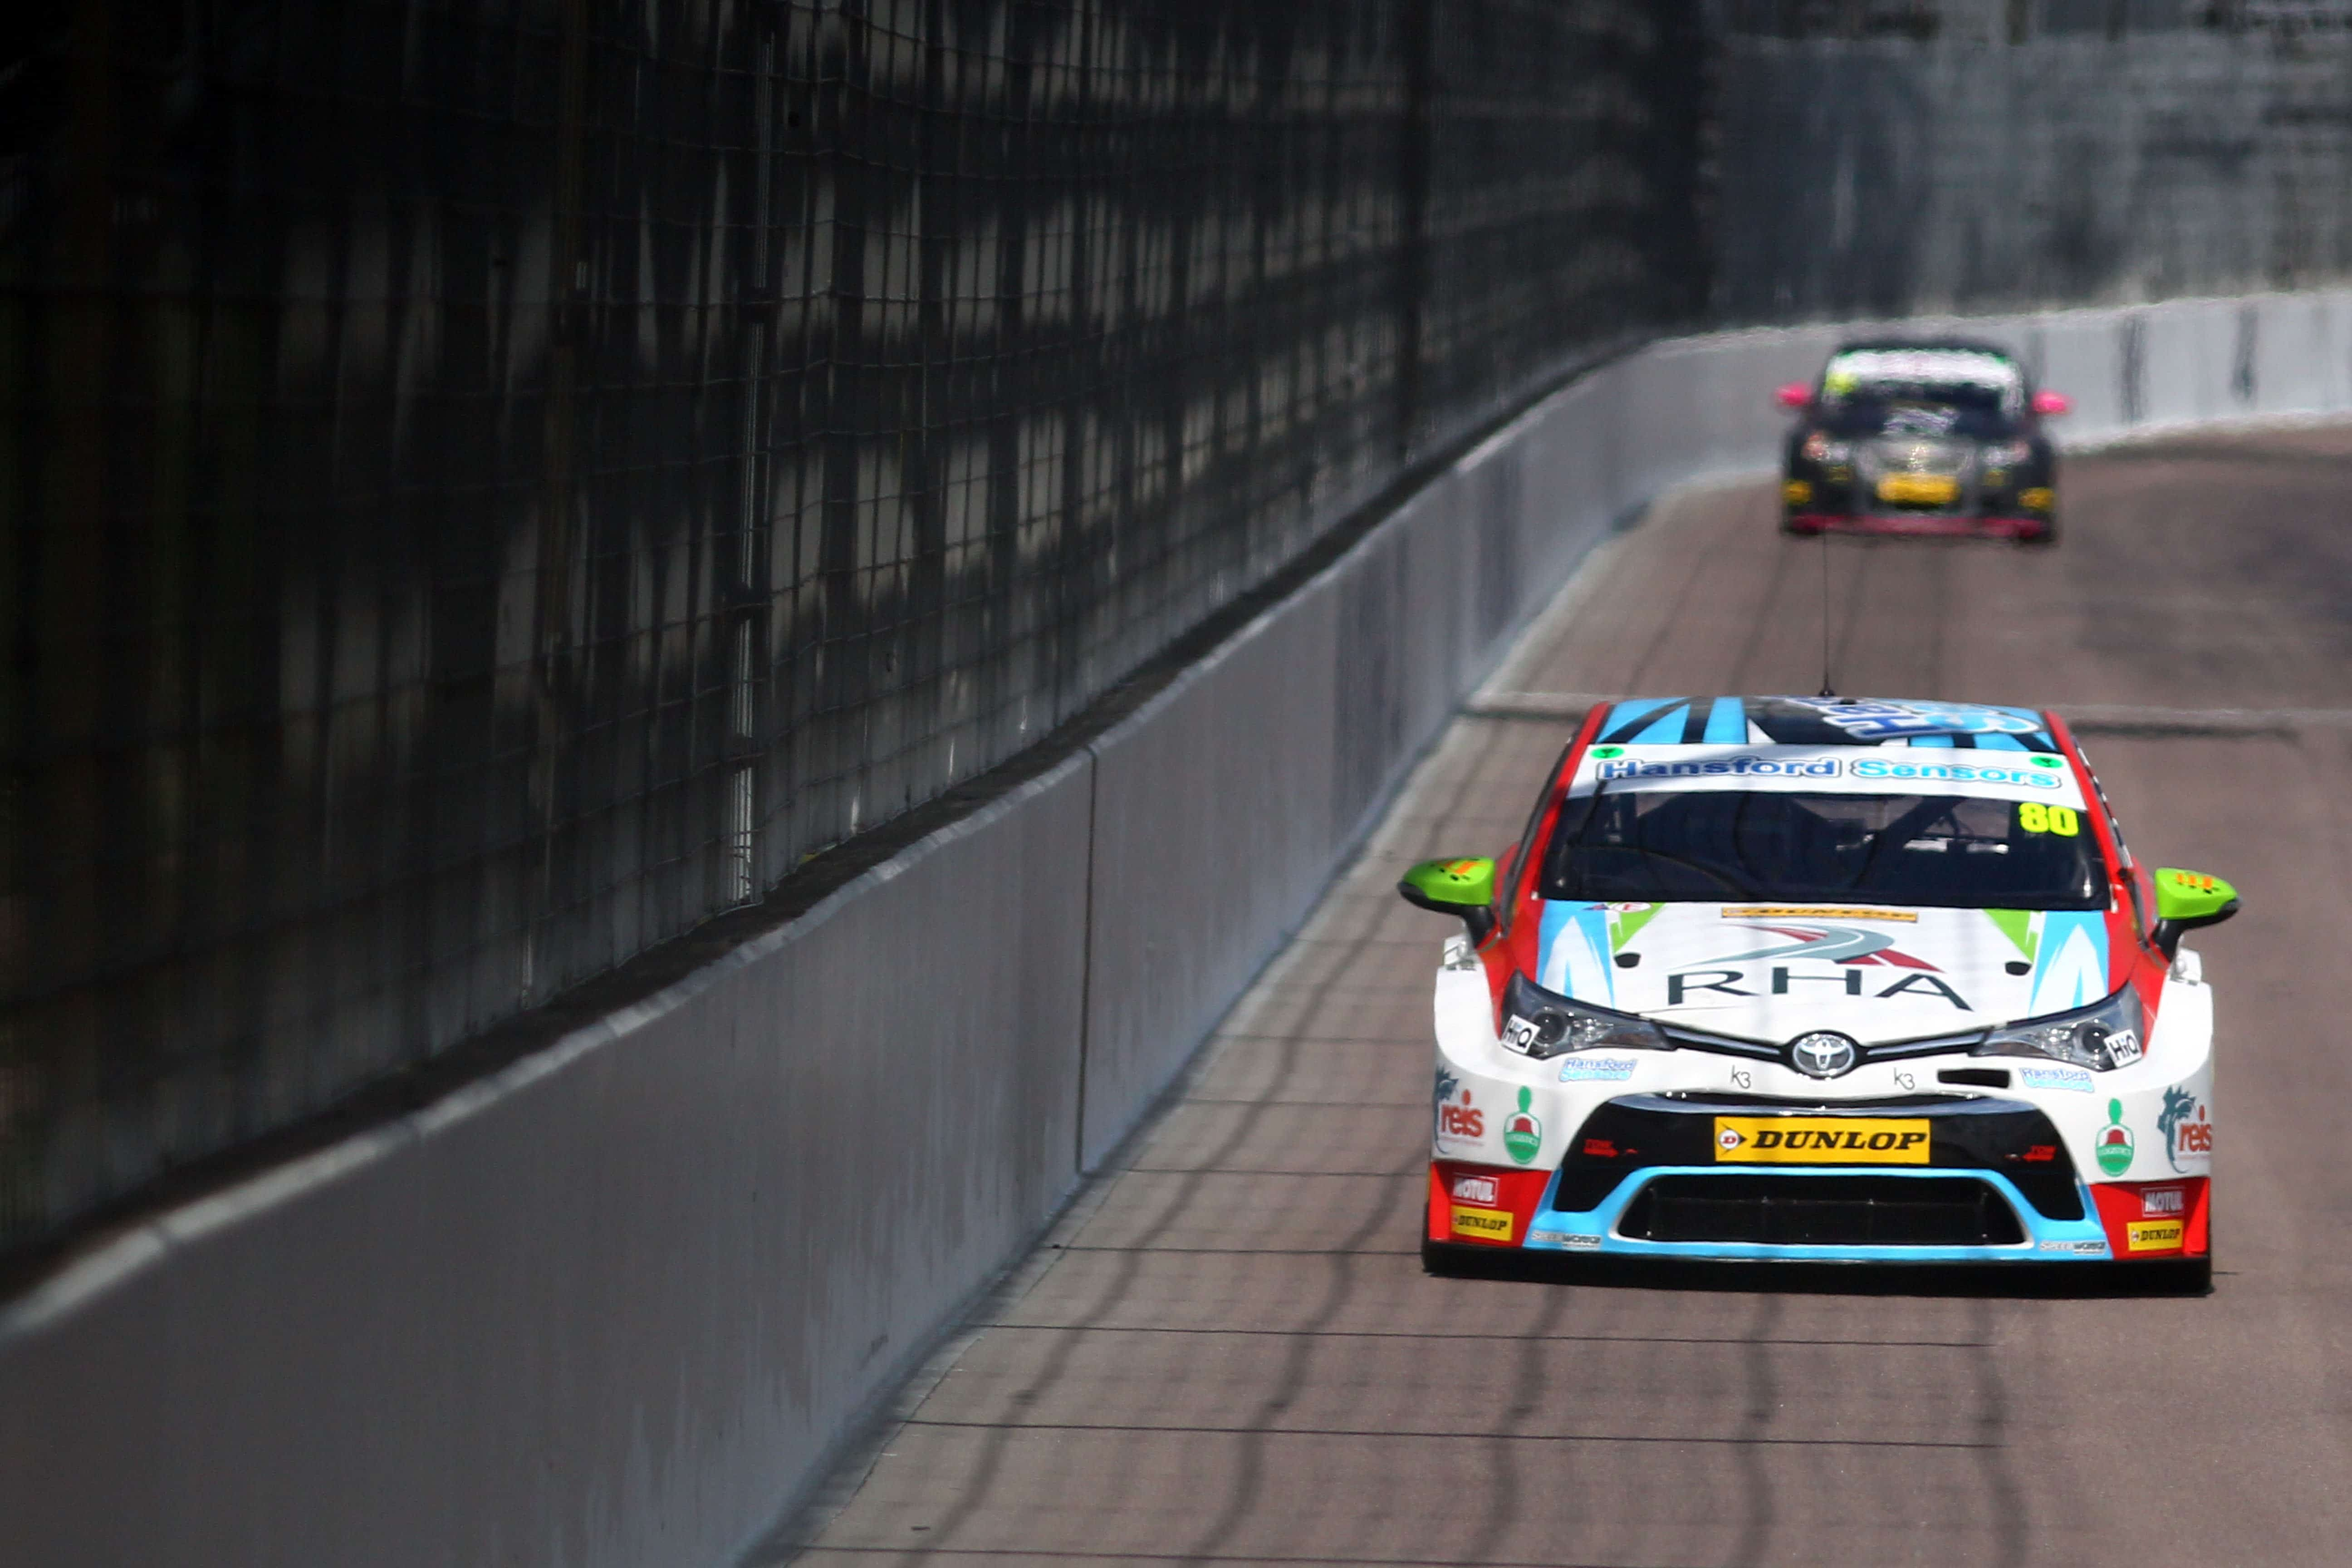 Ingram stuns at Rockingham with top ten charge from back of the grid